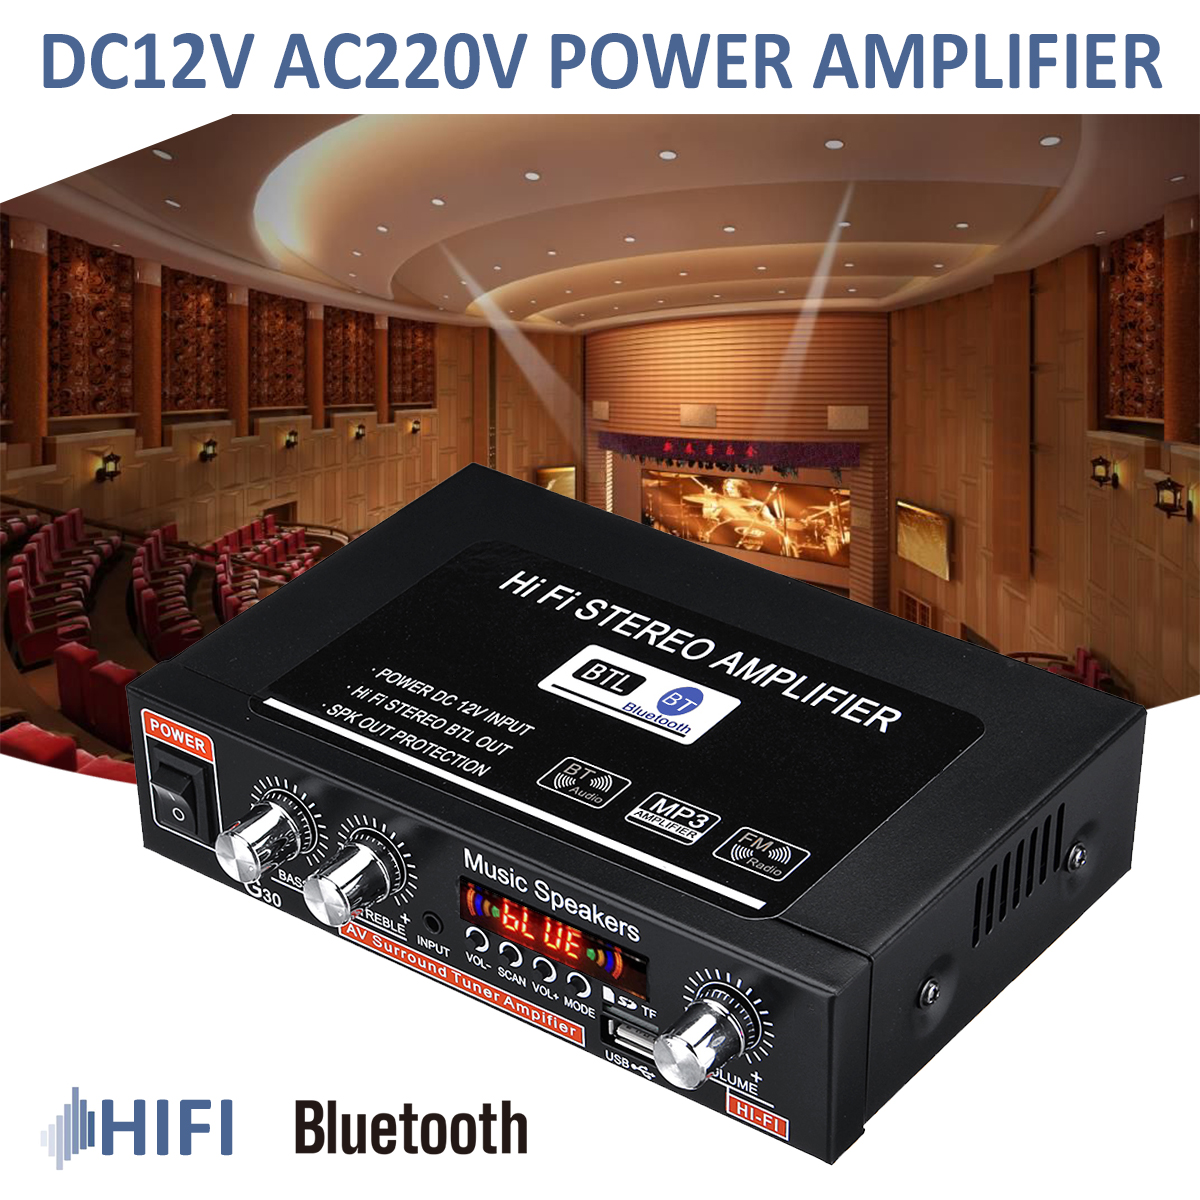 Home Car Bluetooth Audio Powers Amplifier High Fidelity Bluetooth Auto Tuning Amplifier 2CH Stereo Car Subwoofer With Remote 90W